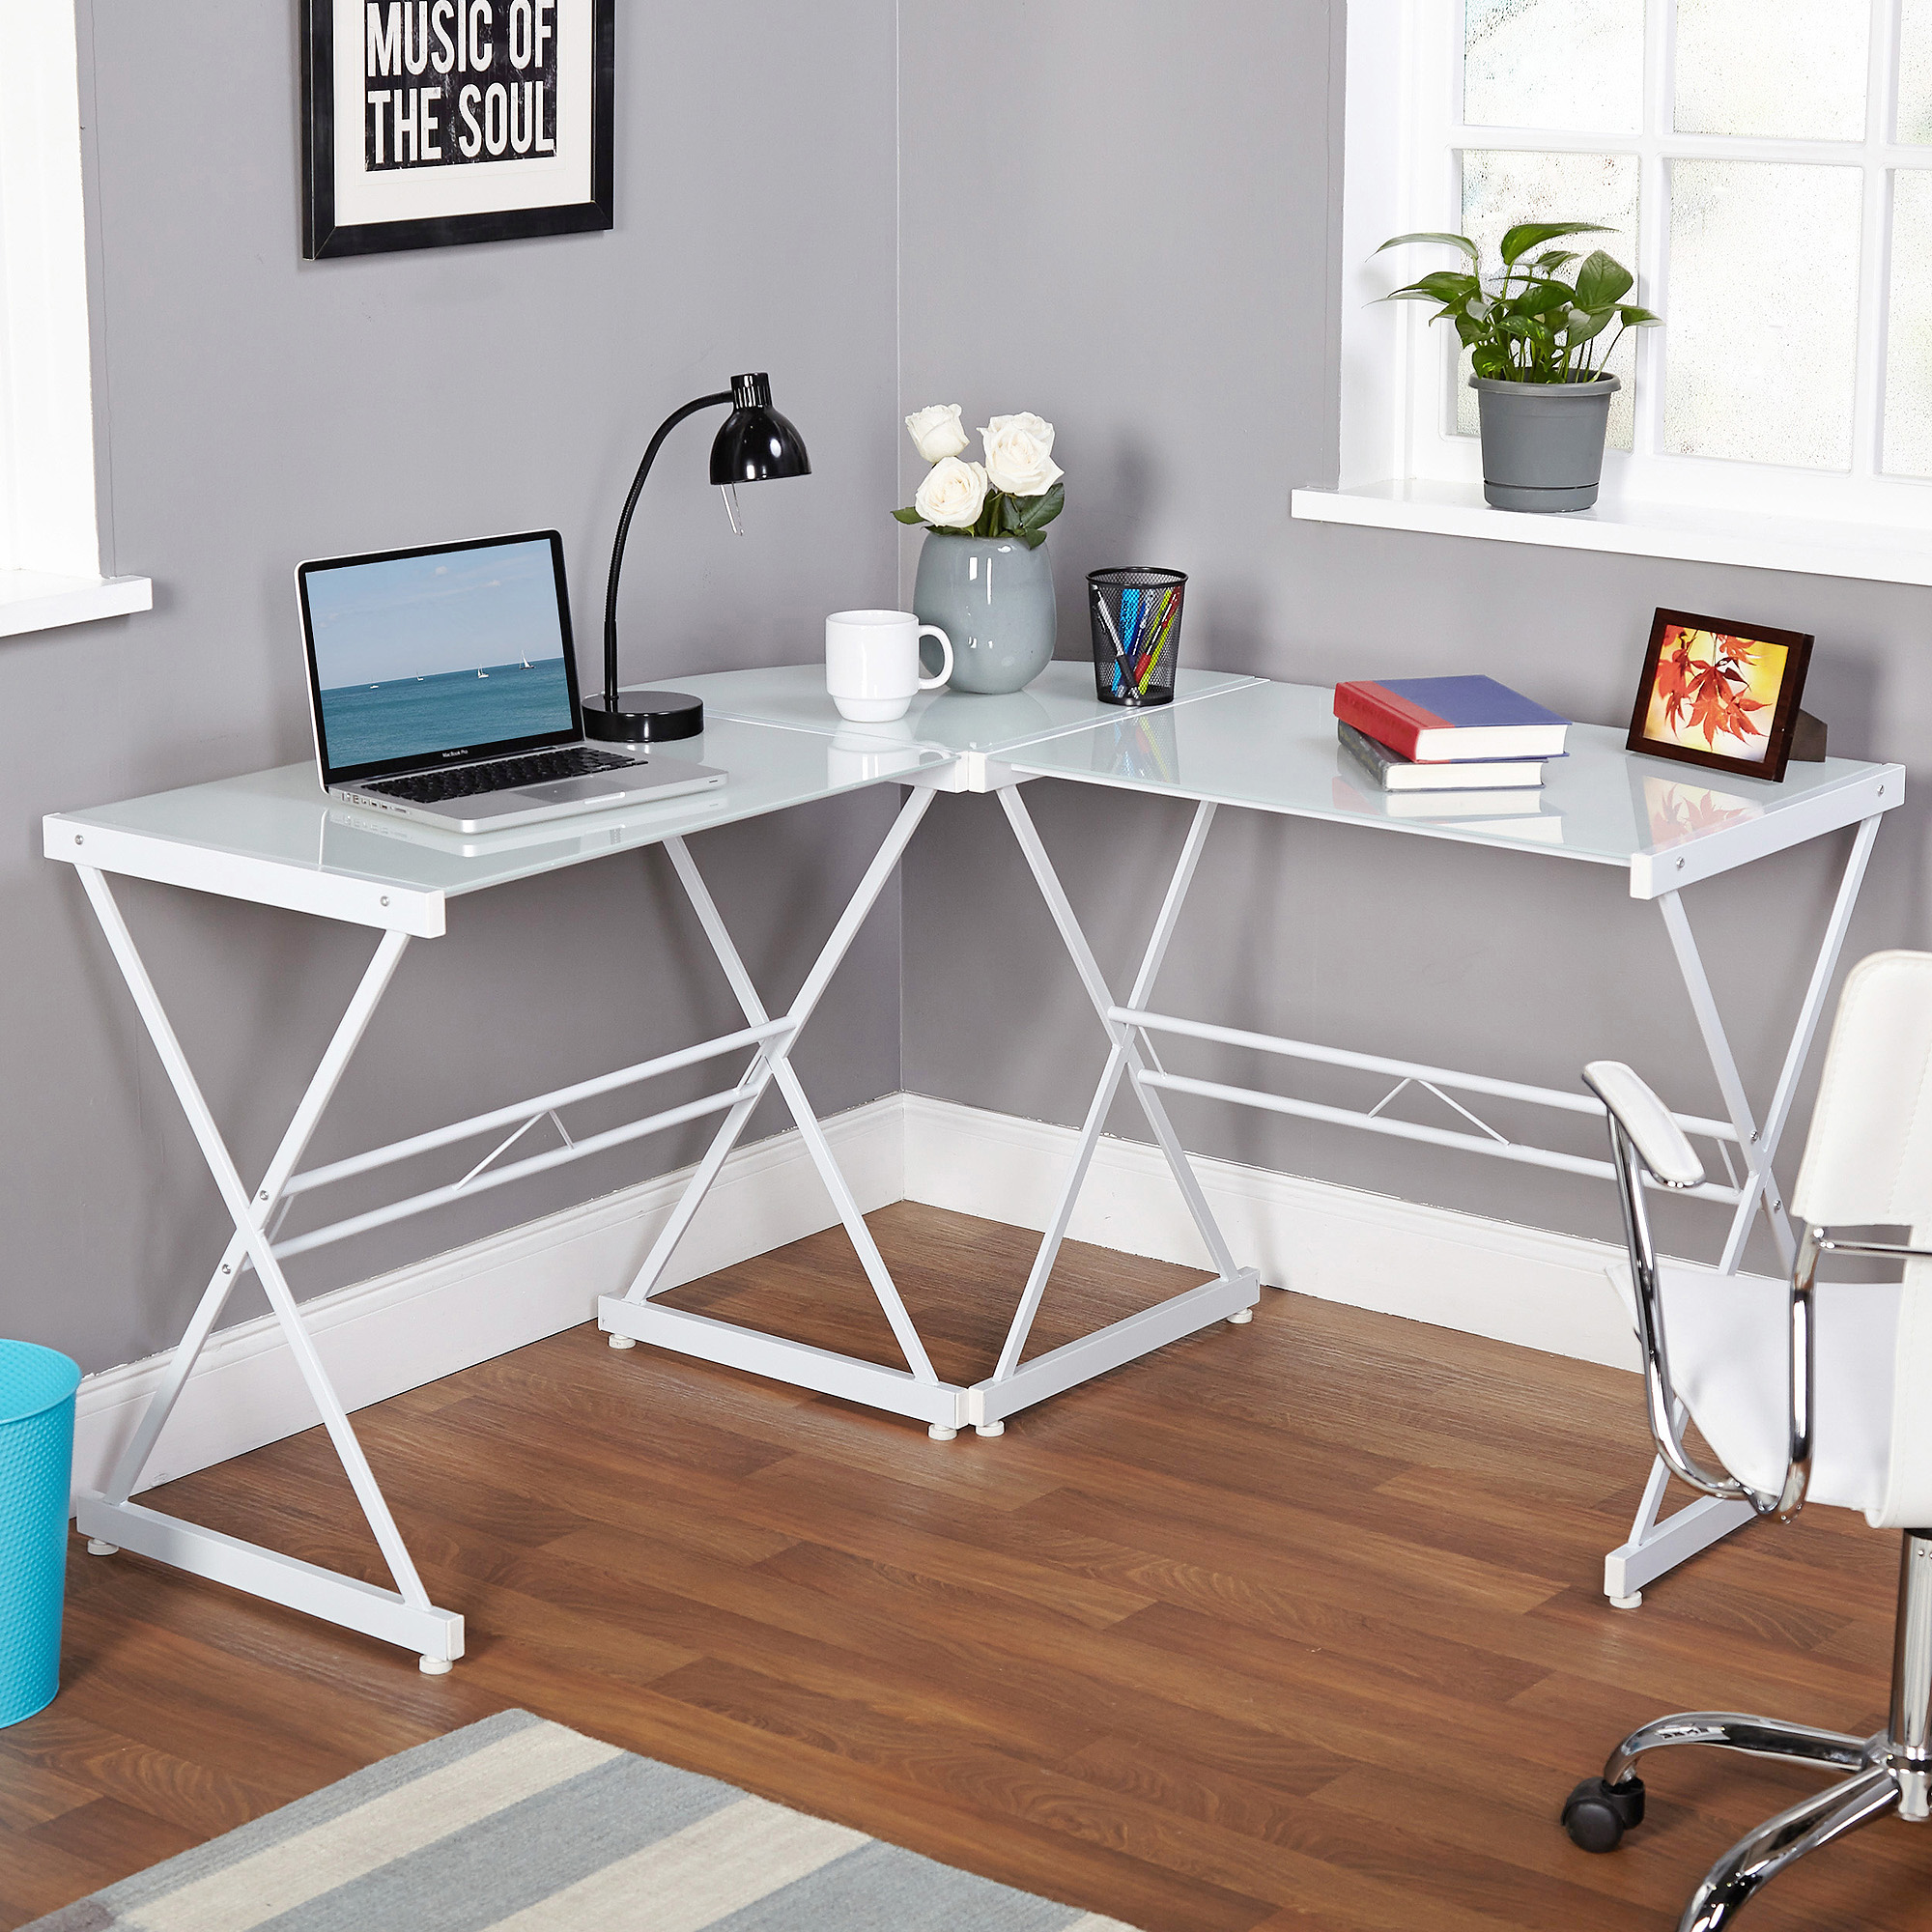 glass desk for office. Atrium Metal And Glass L-shaped Computer Desk, Multiple Colors - Walmart.com Desk For Office